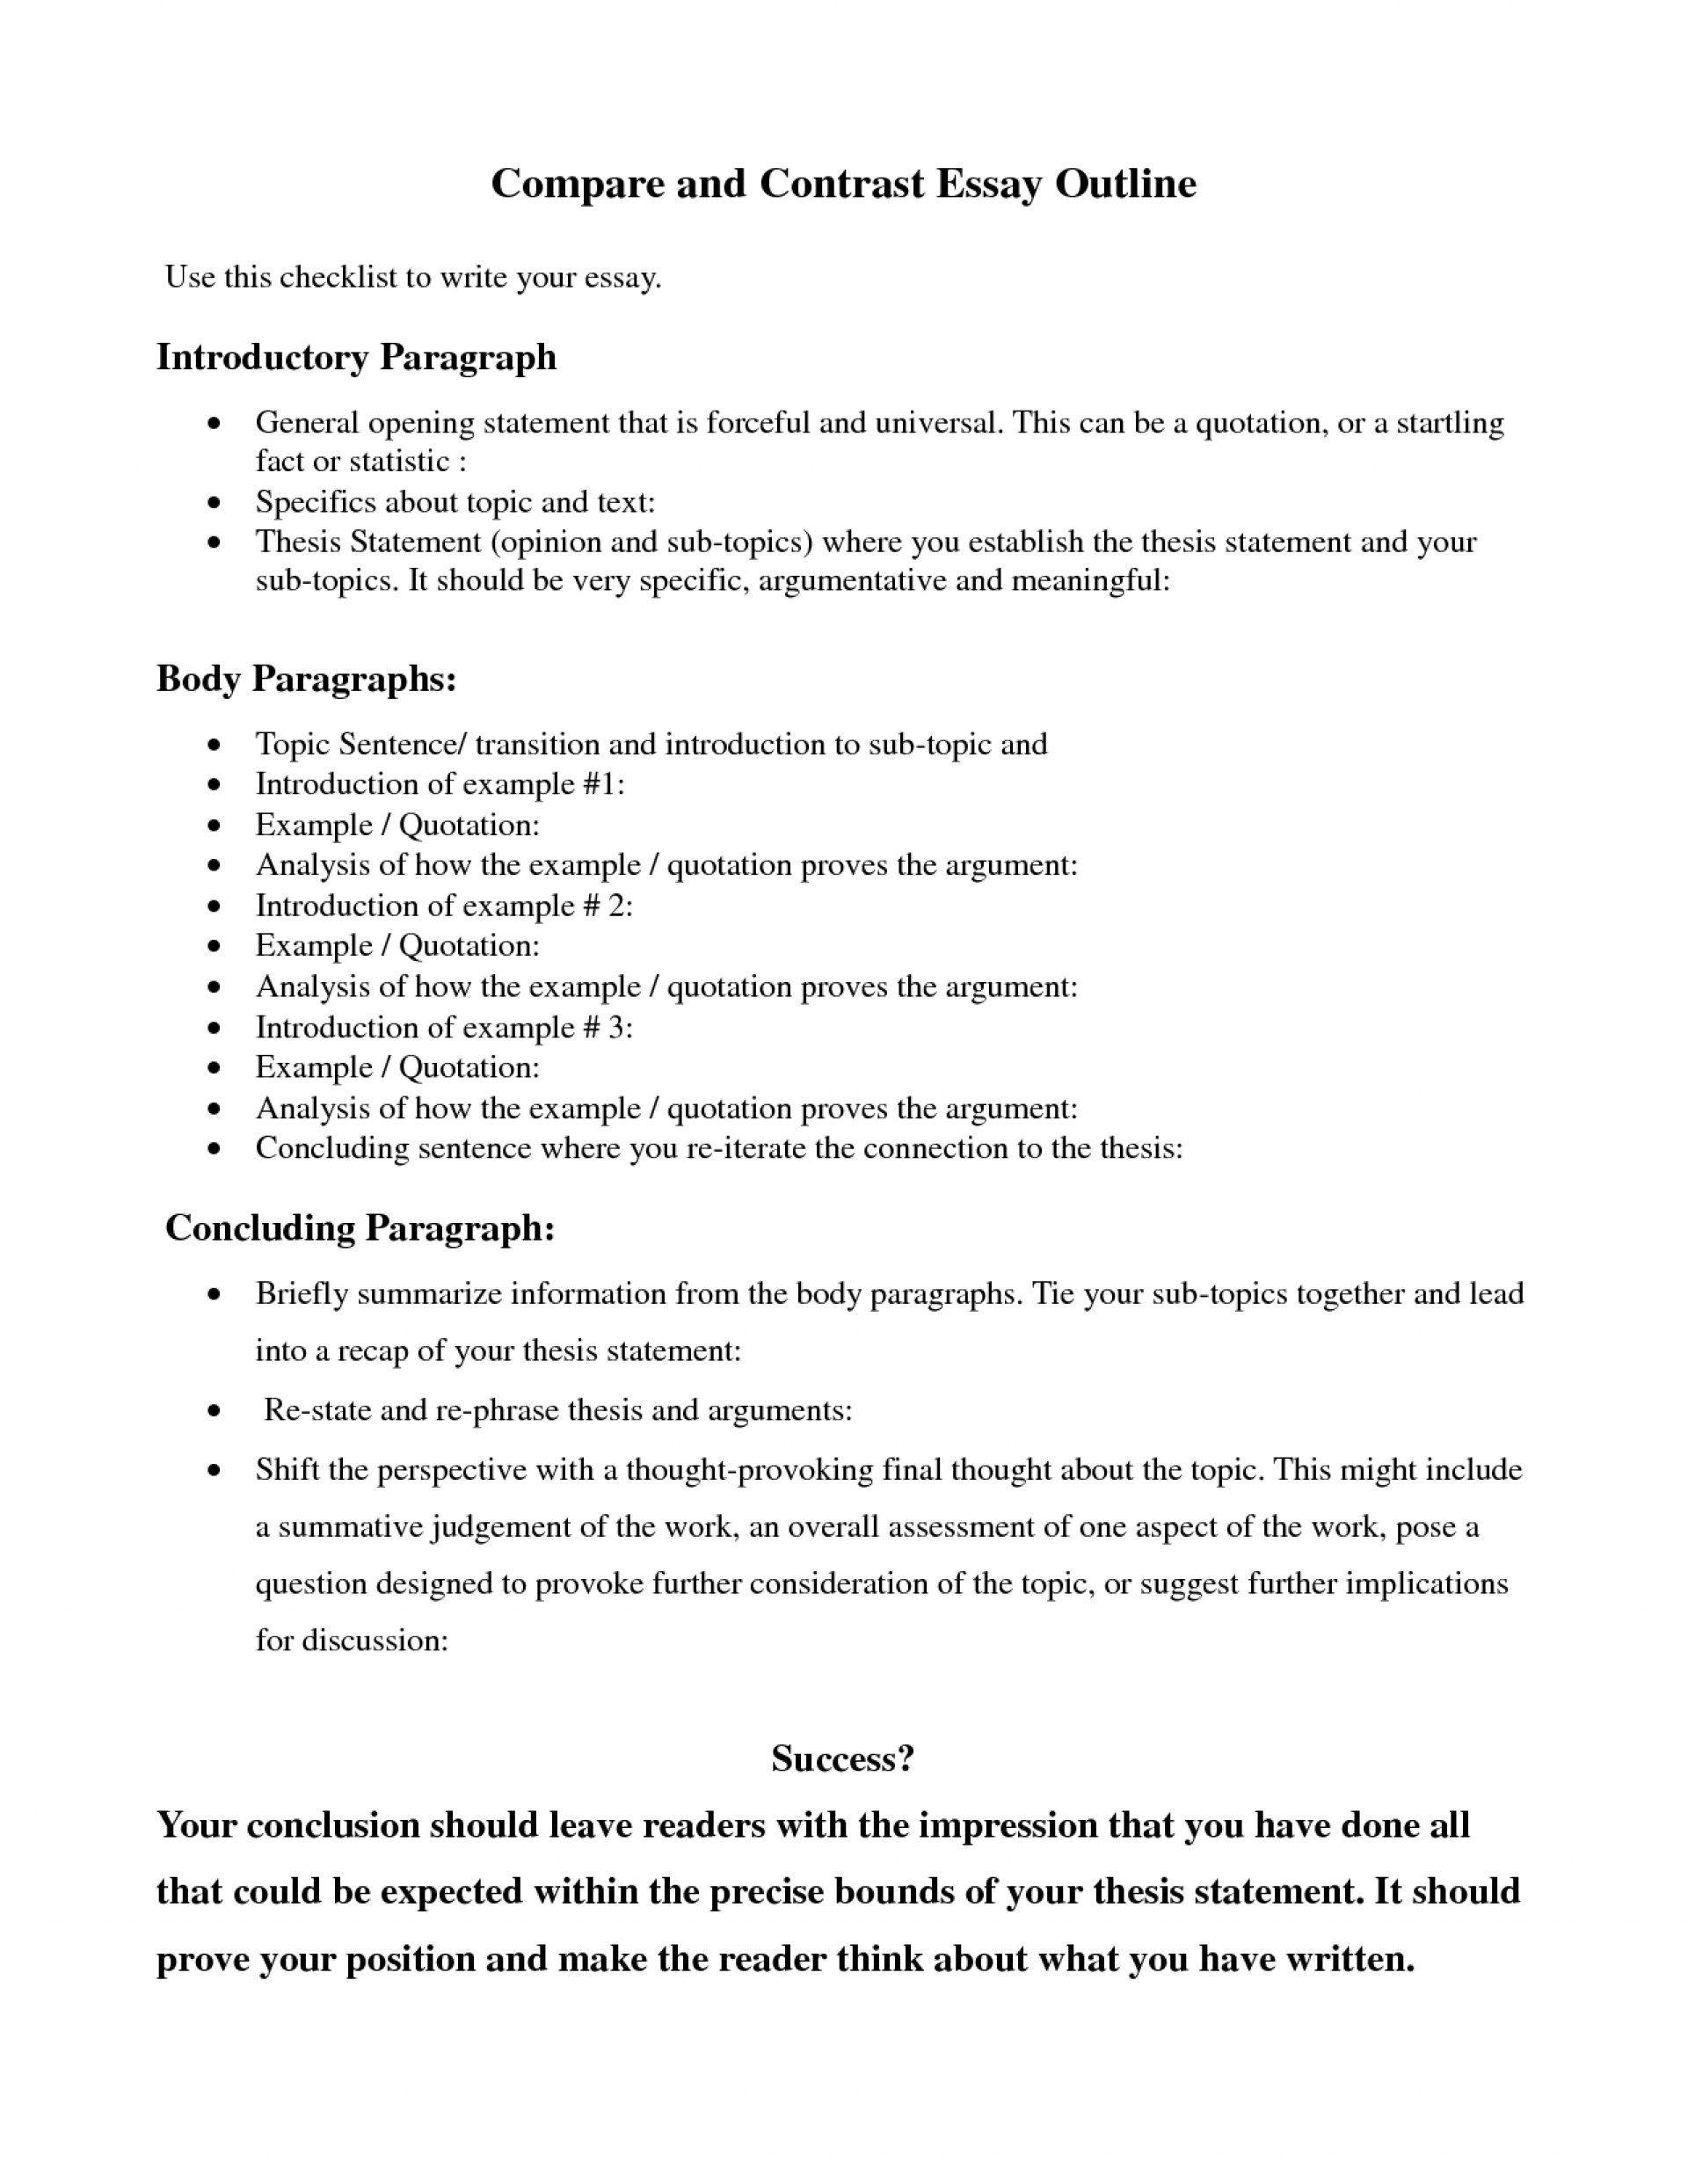 001 Comparing And Contrasting Essay Unique Compare Contrast Topics Easy Sample 6th Grade Outline Middle School 1920